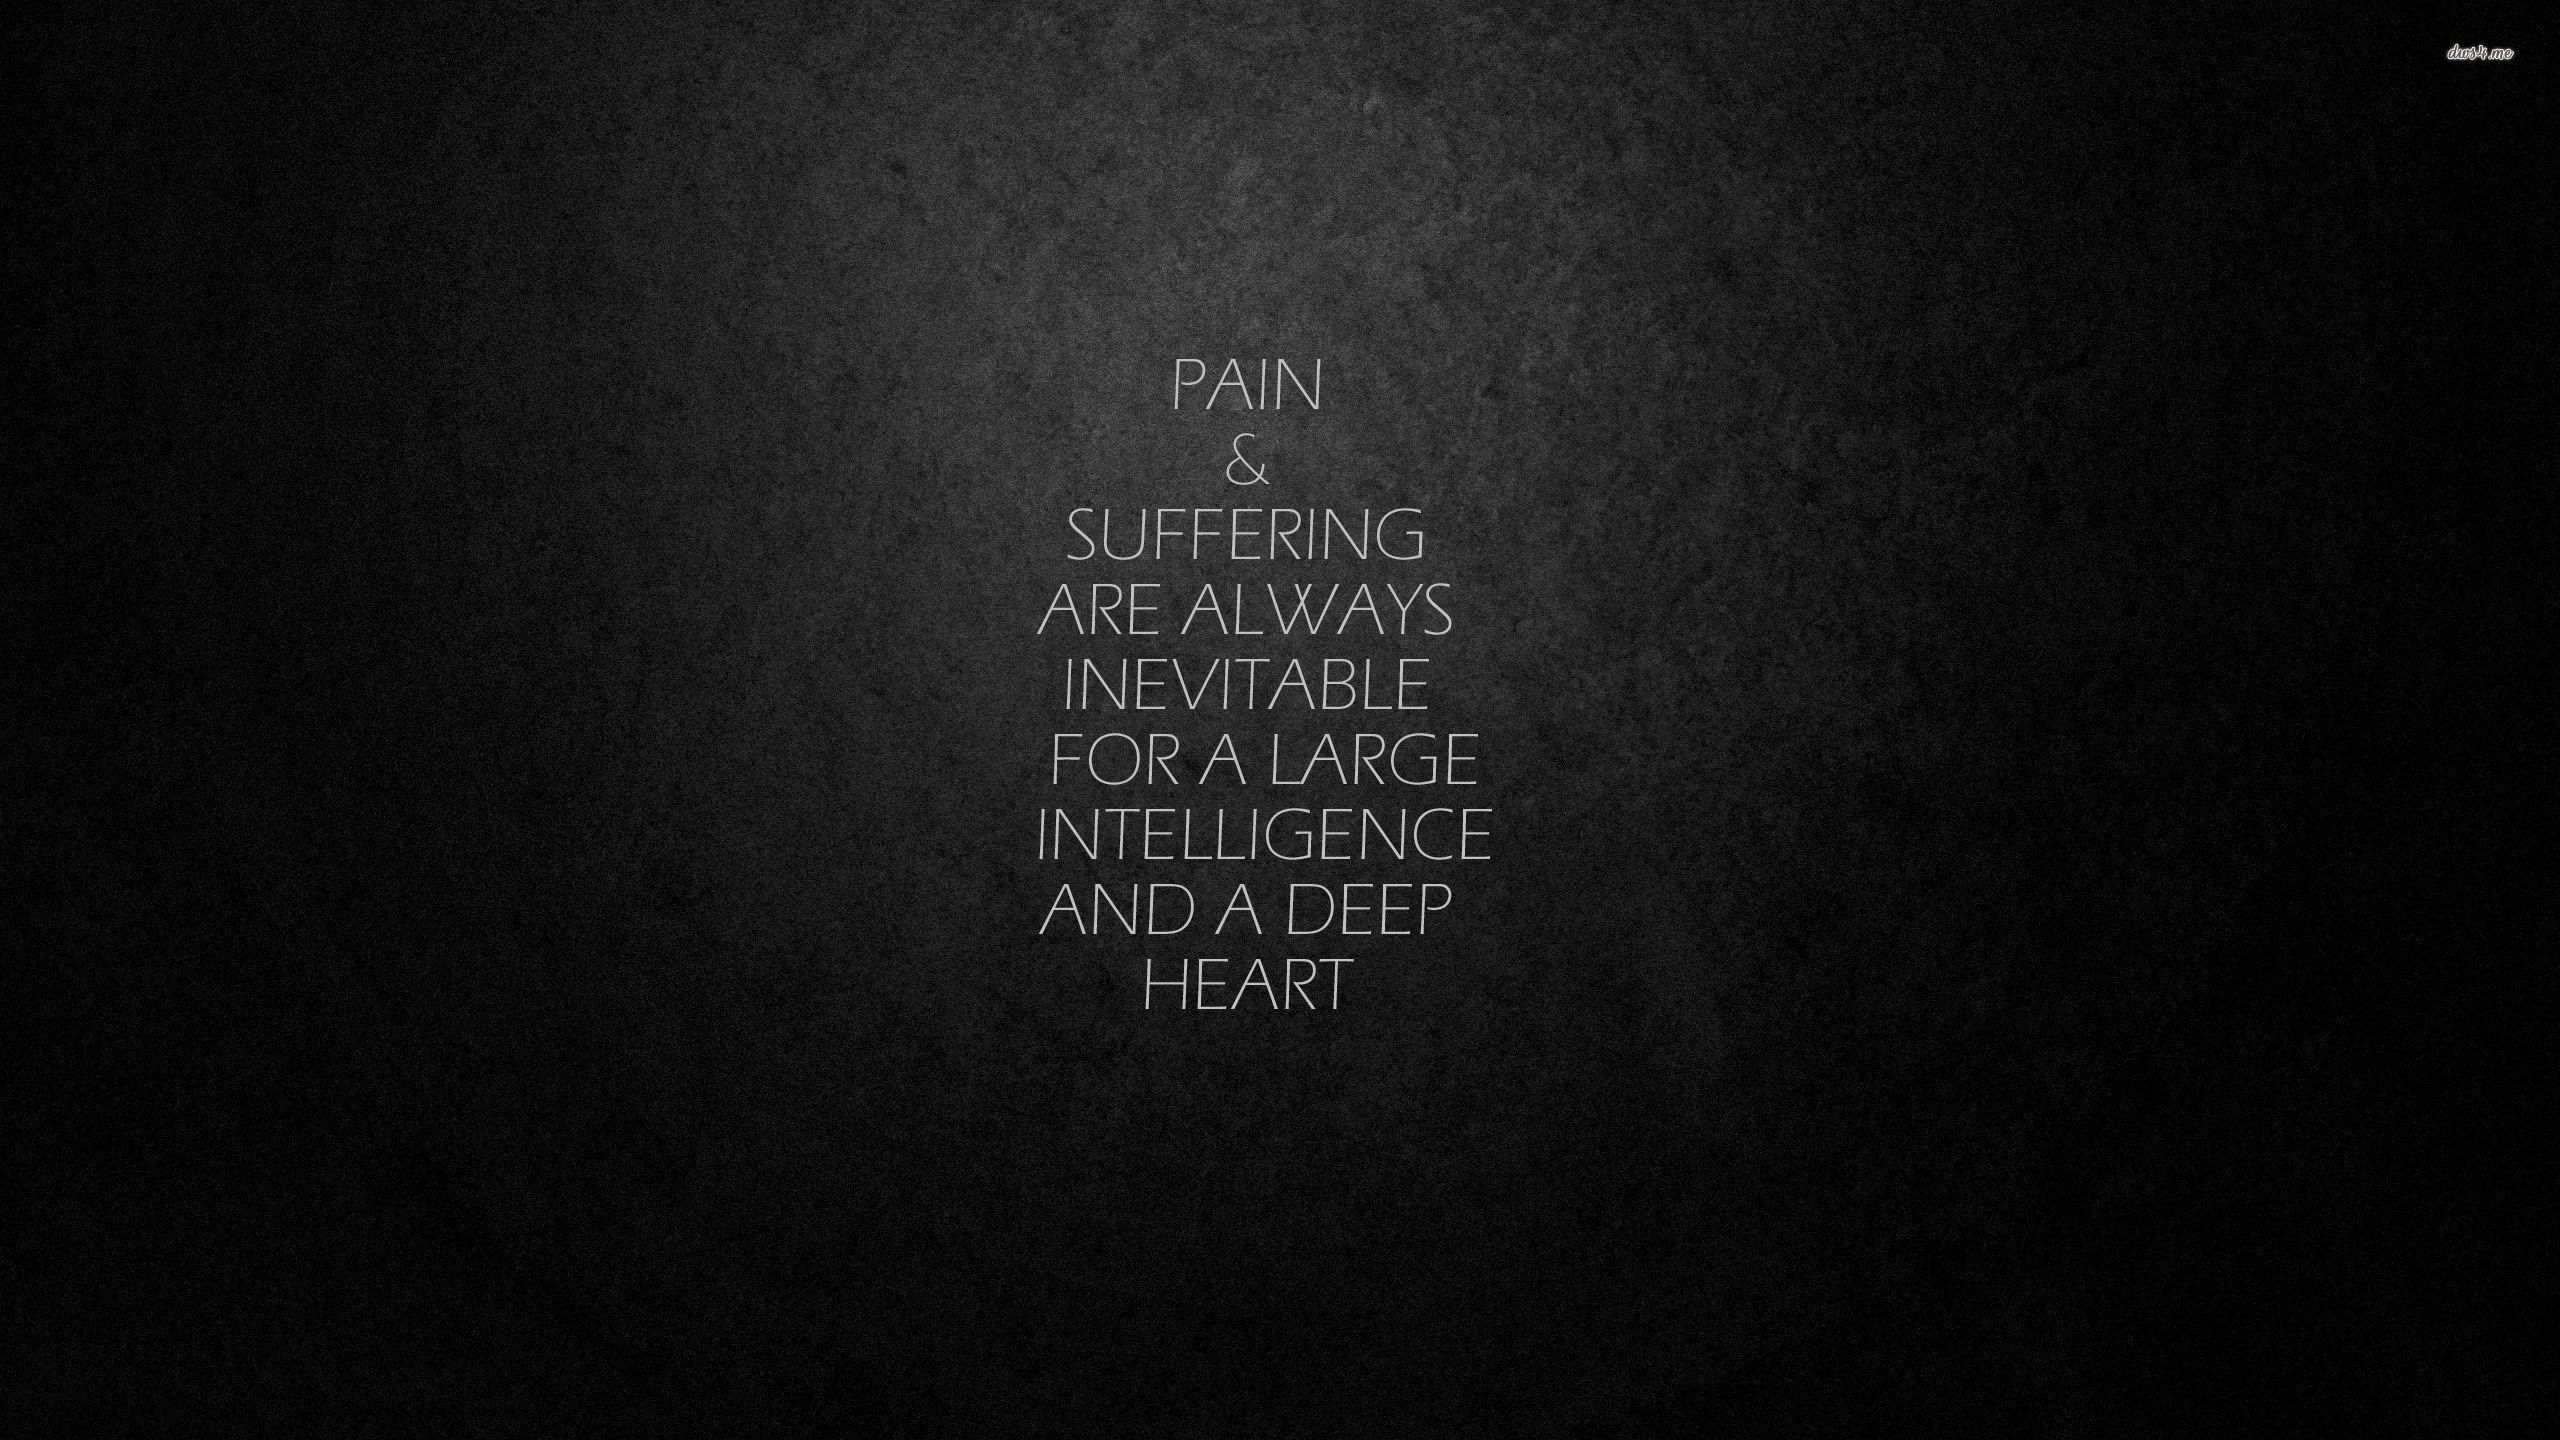 89 Deep Naruto Quotes Wallpaper Suffering Quotes Dark Quotes About Life Dark Quotes